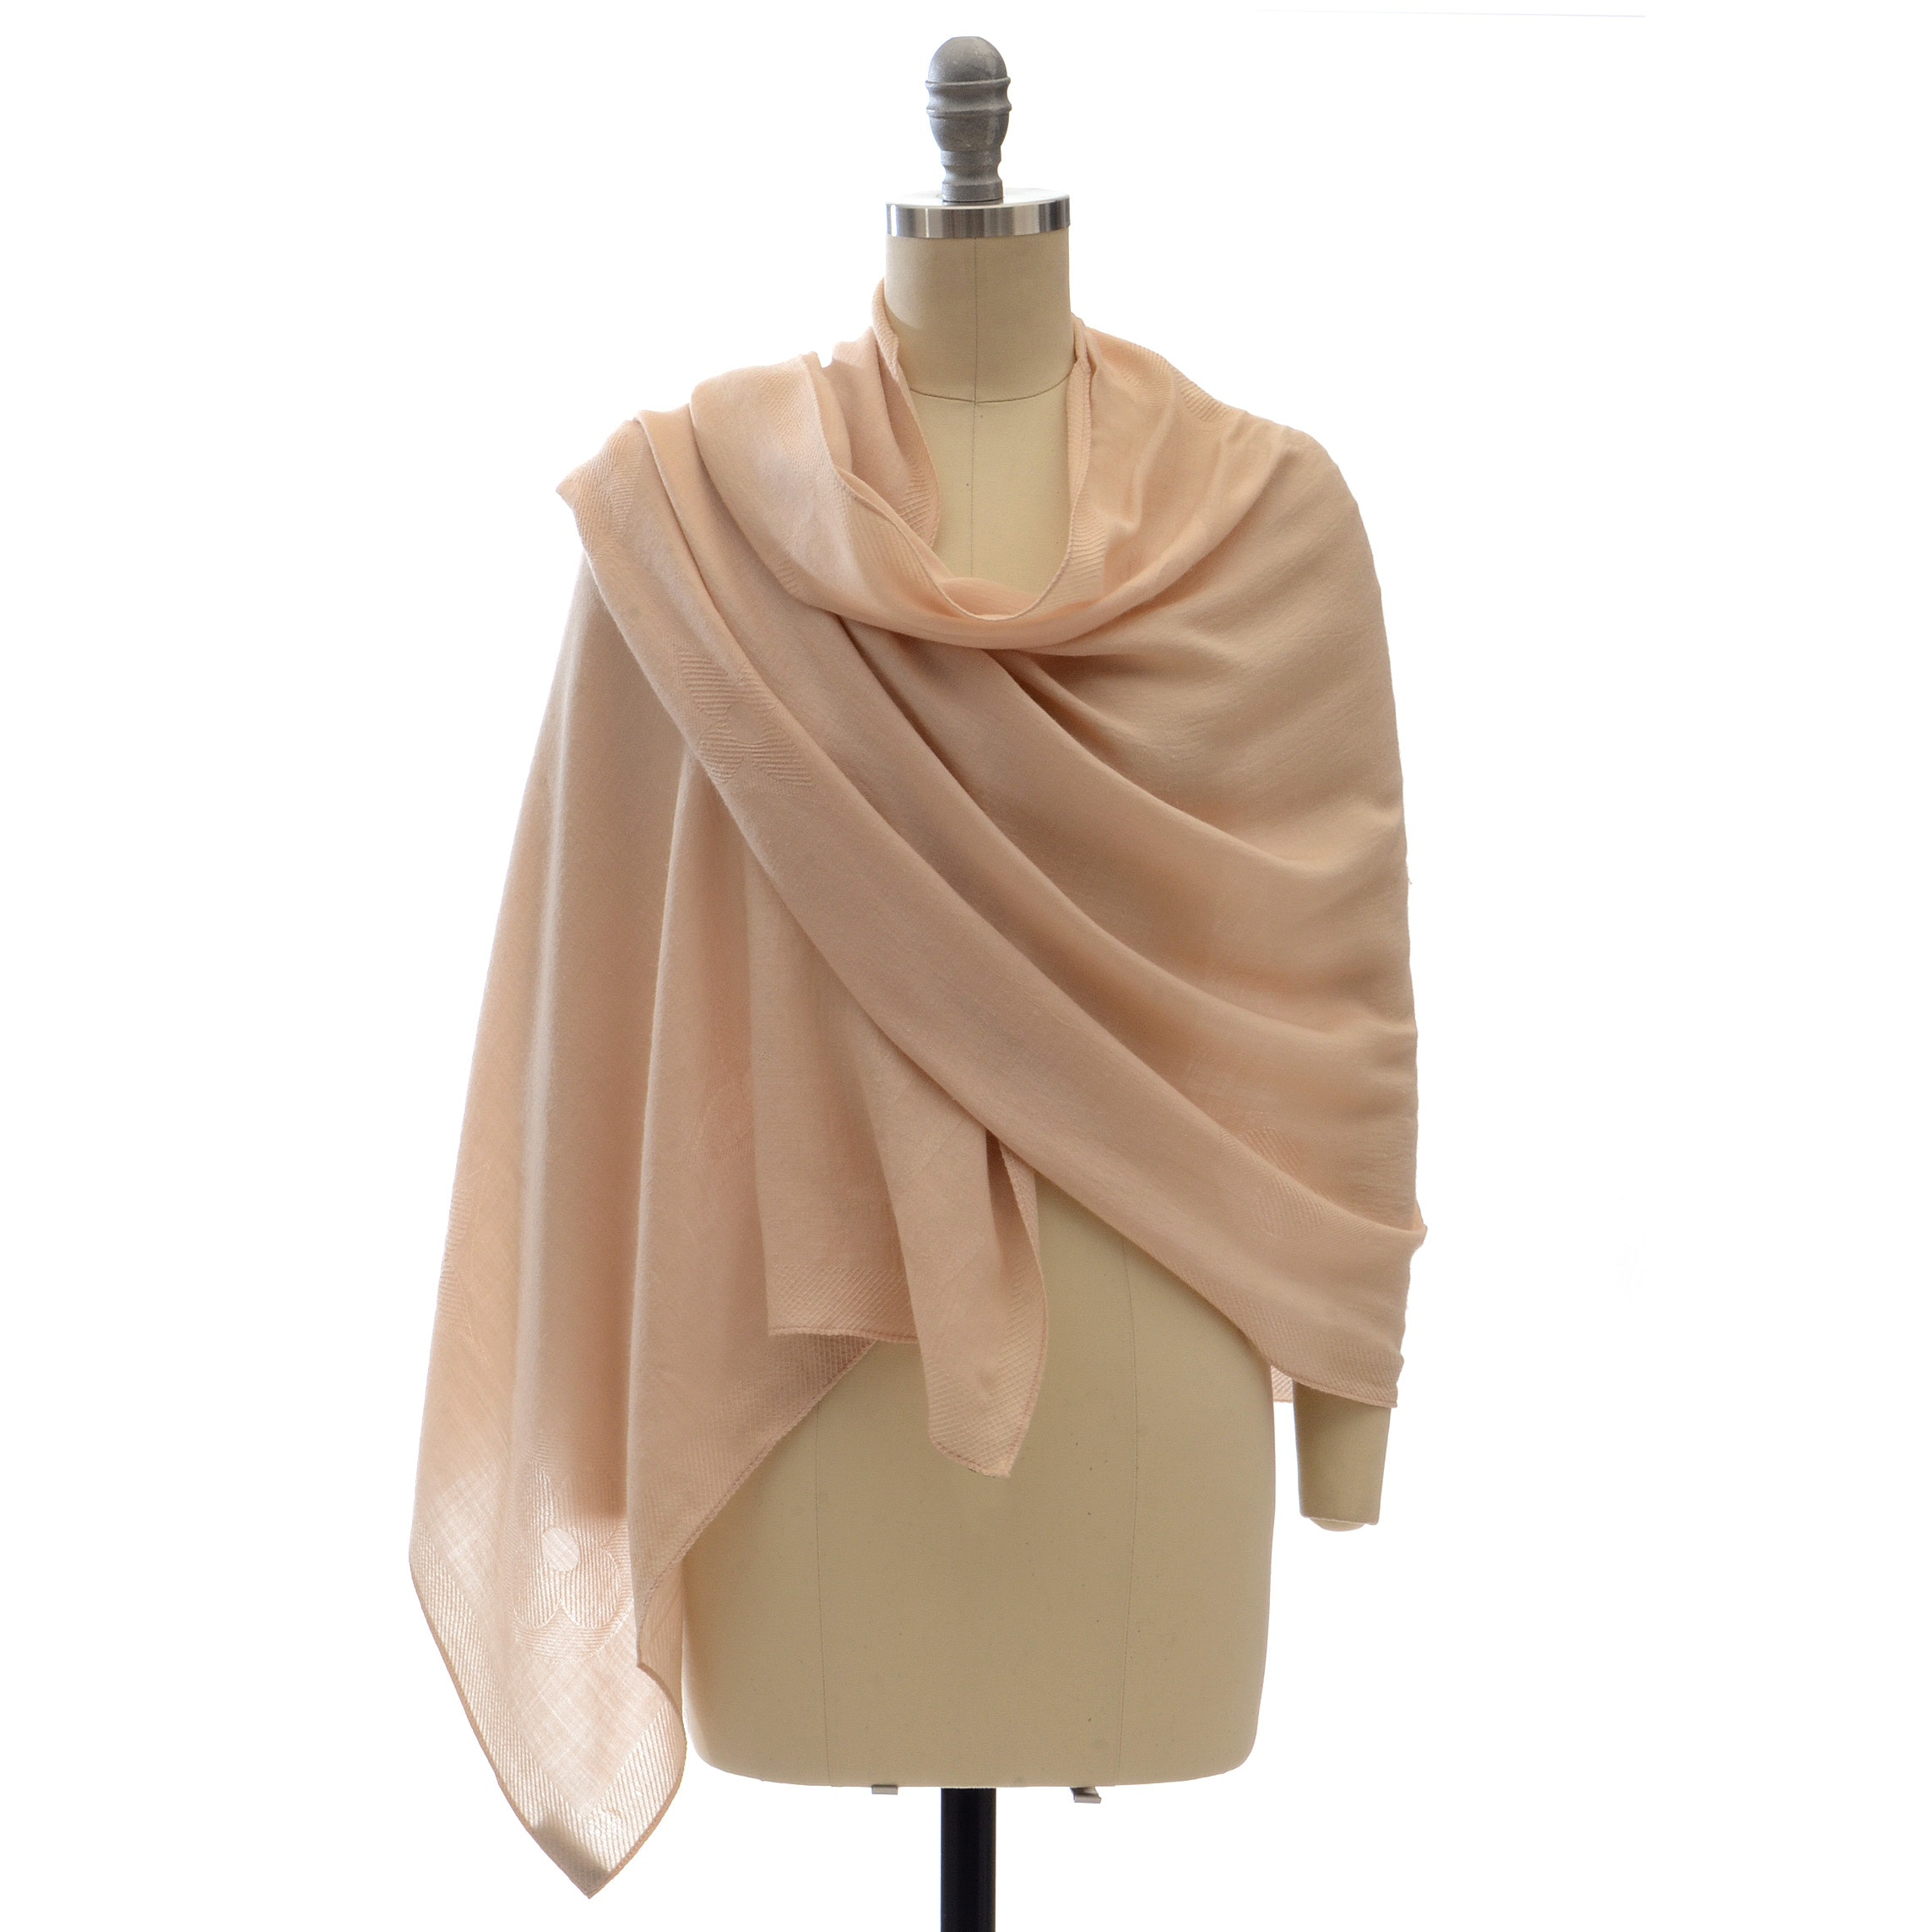 Louis Vuitton of Paris Beige Silk Cashmere Jacquard Weave Logo Stole with Monogram